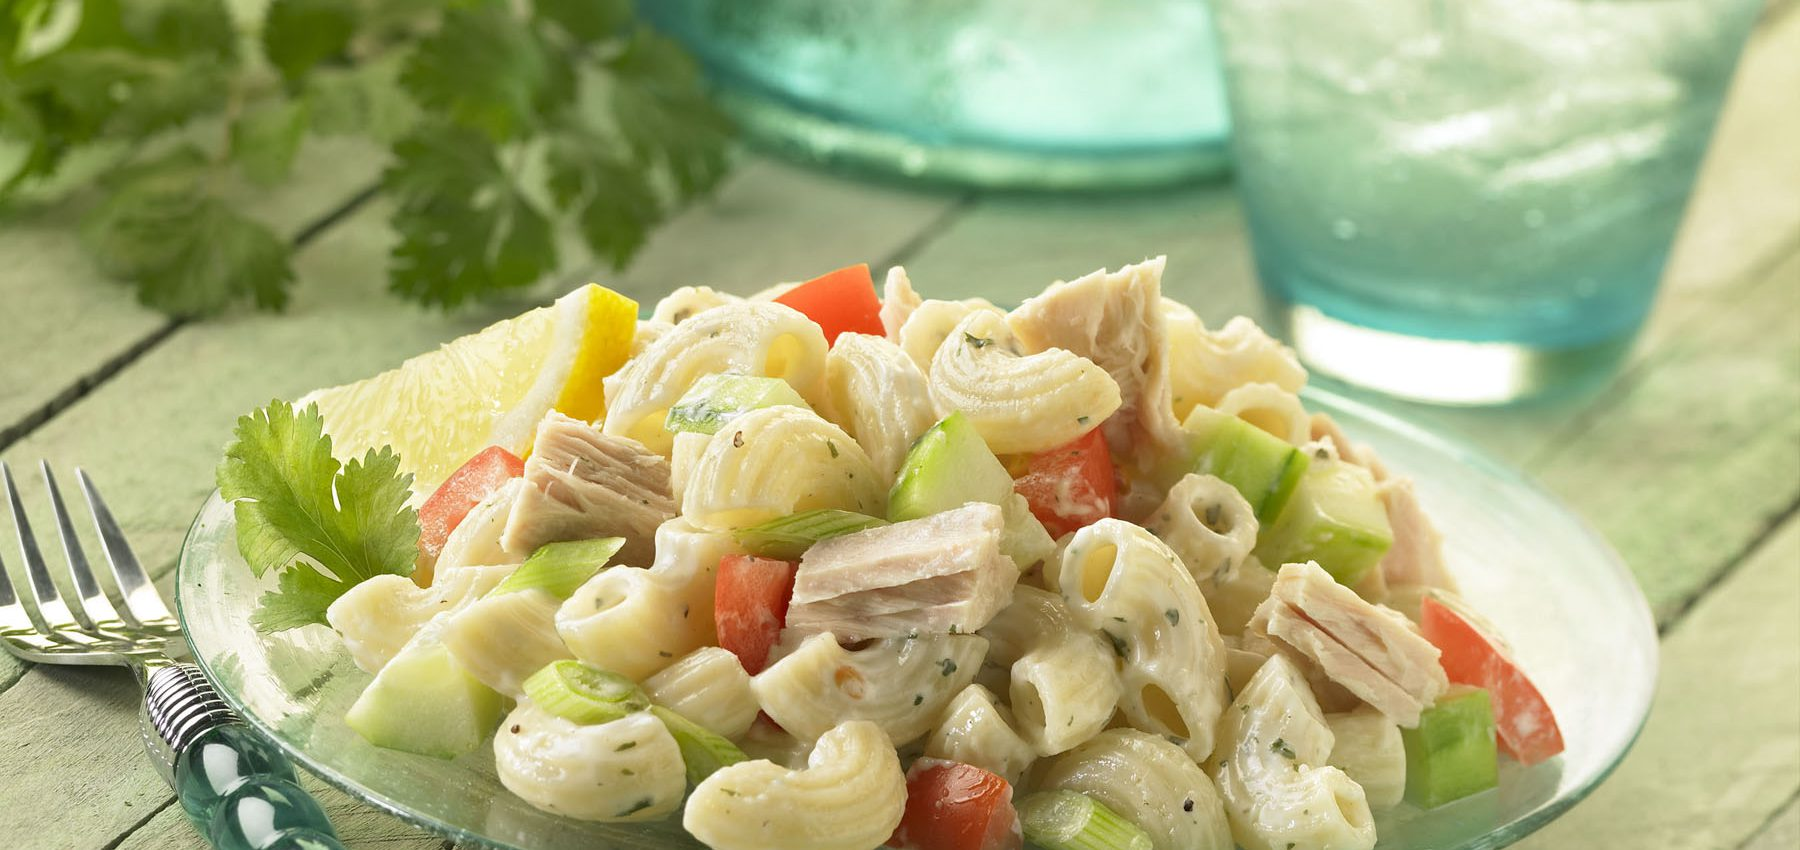 Ridged-Elbows-Gar-Tuna-Mac-Salad-1800x850 Market Vegetable Macaroni Salad with Tuna